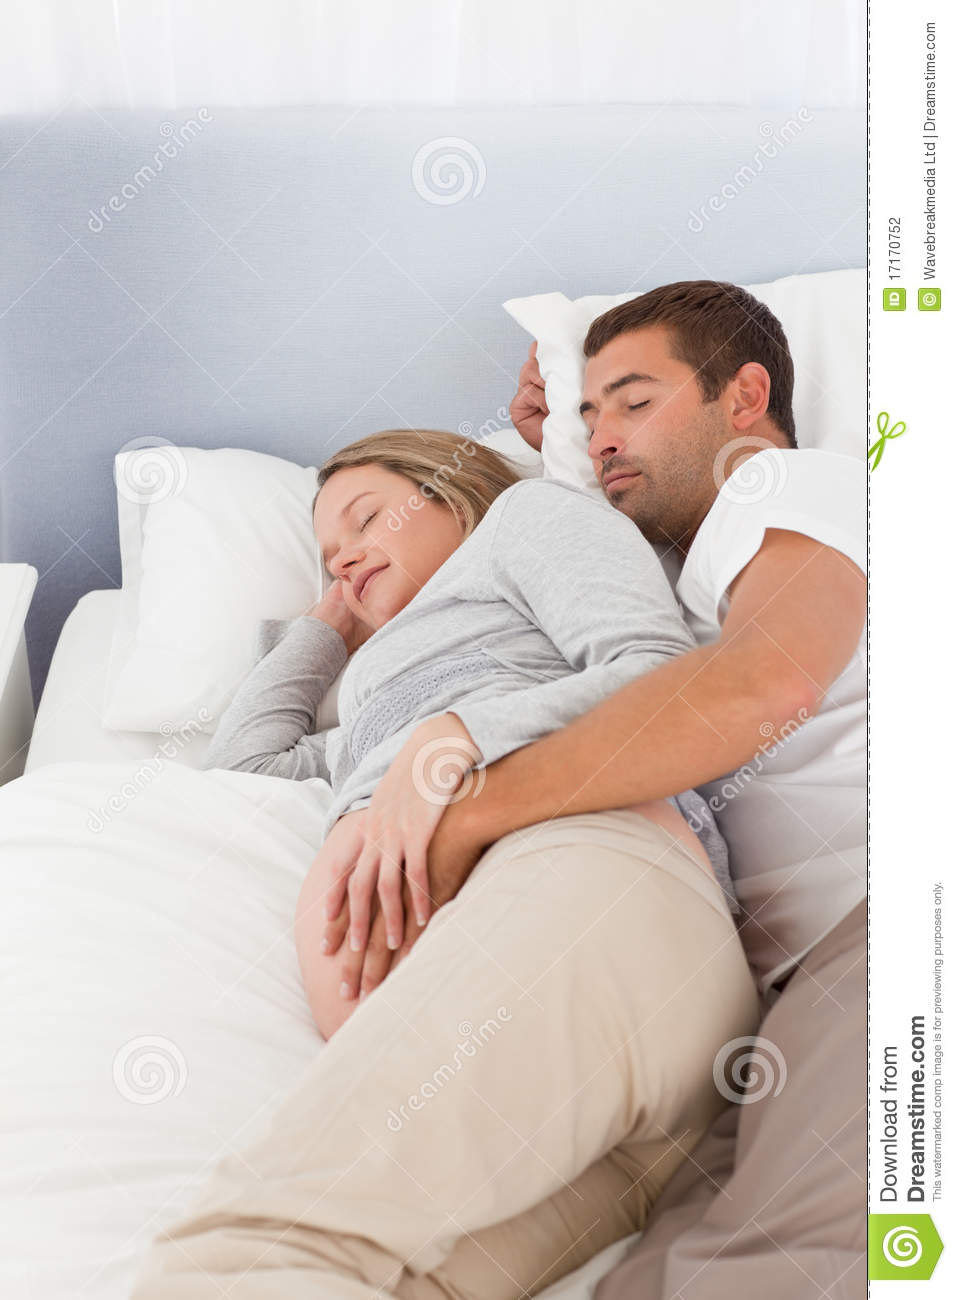 Baby Sleeping In Bedroom With Parents: Lovely Future Parents Sleeping In The Bedroom Stock